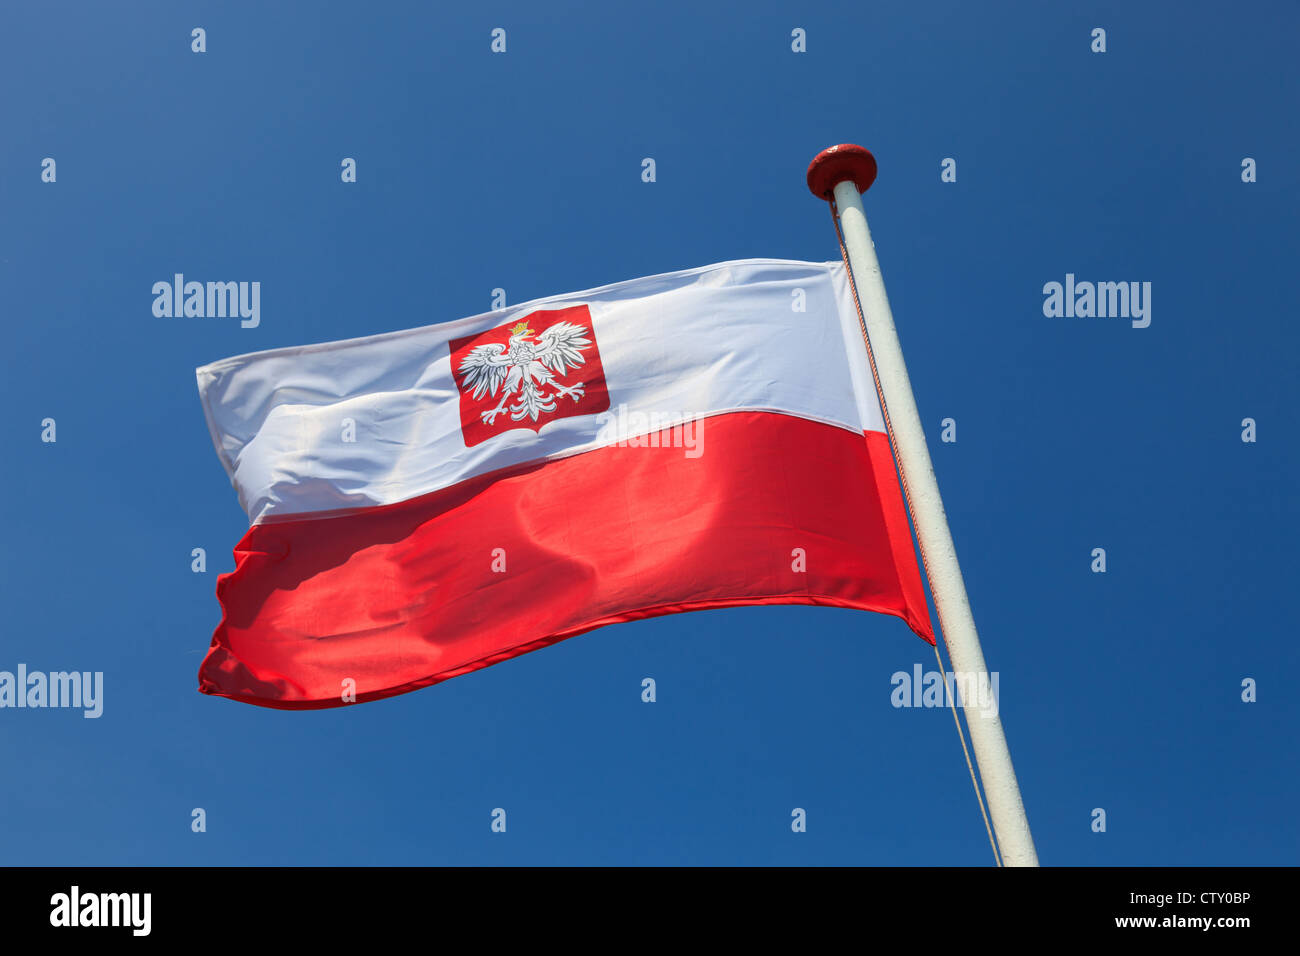 Polish national flag in the sky. - Stock Image